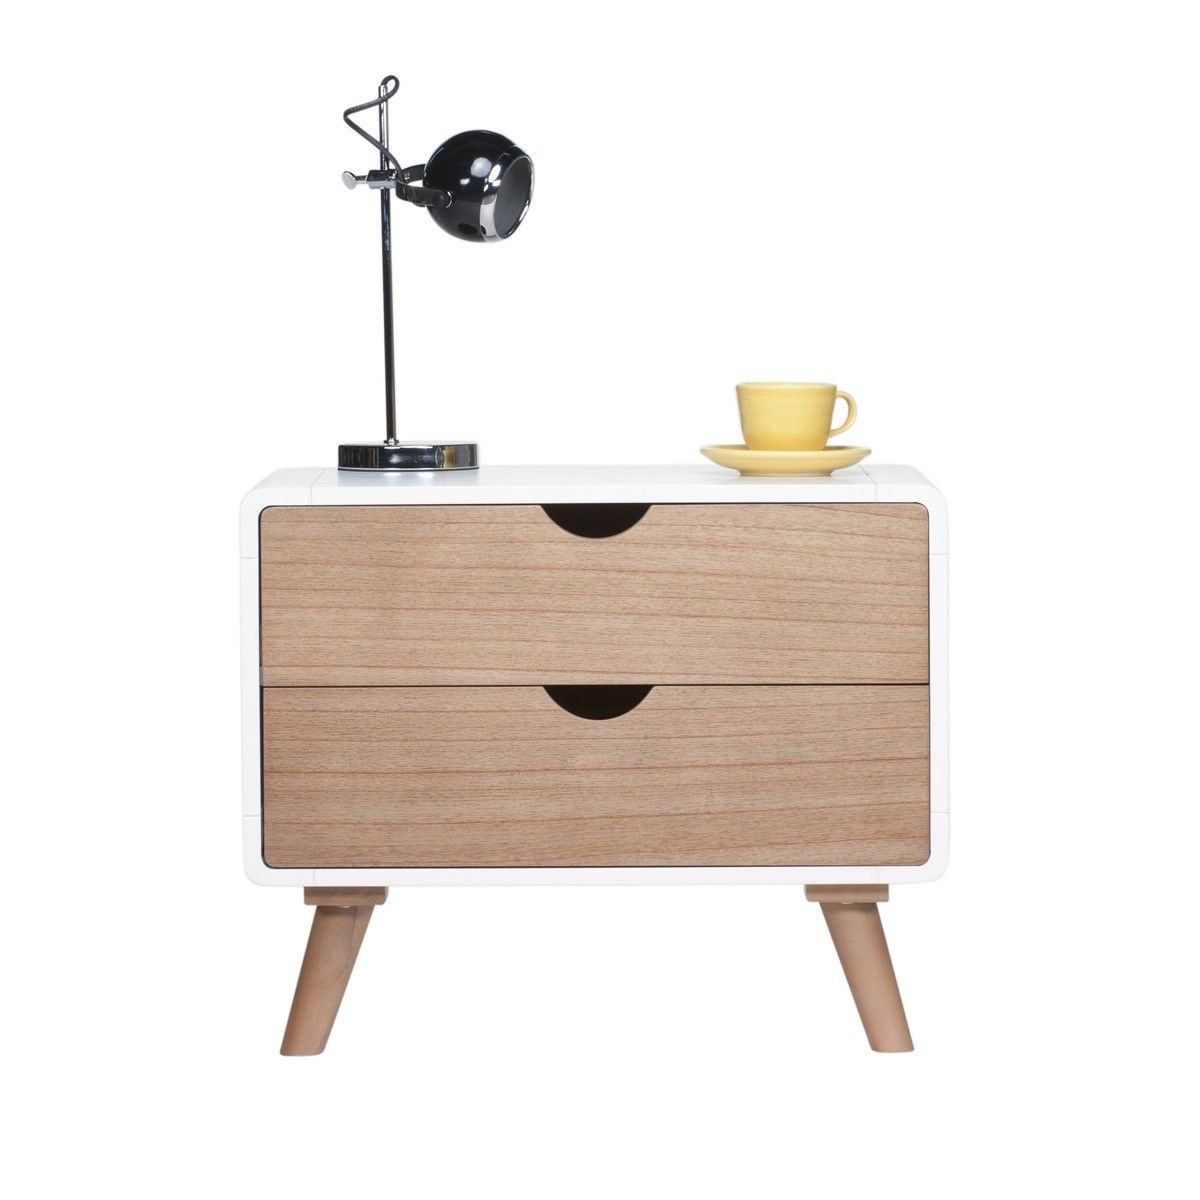 Felix Bedside Table These bedside tables might not be the